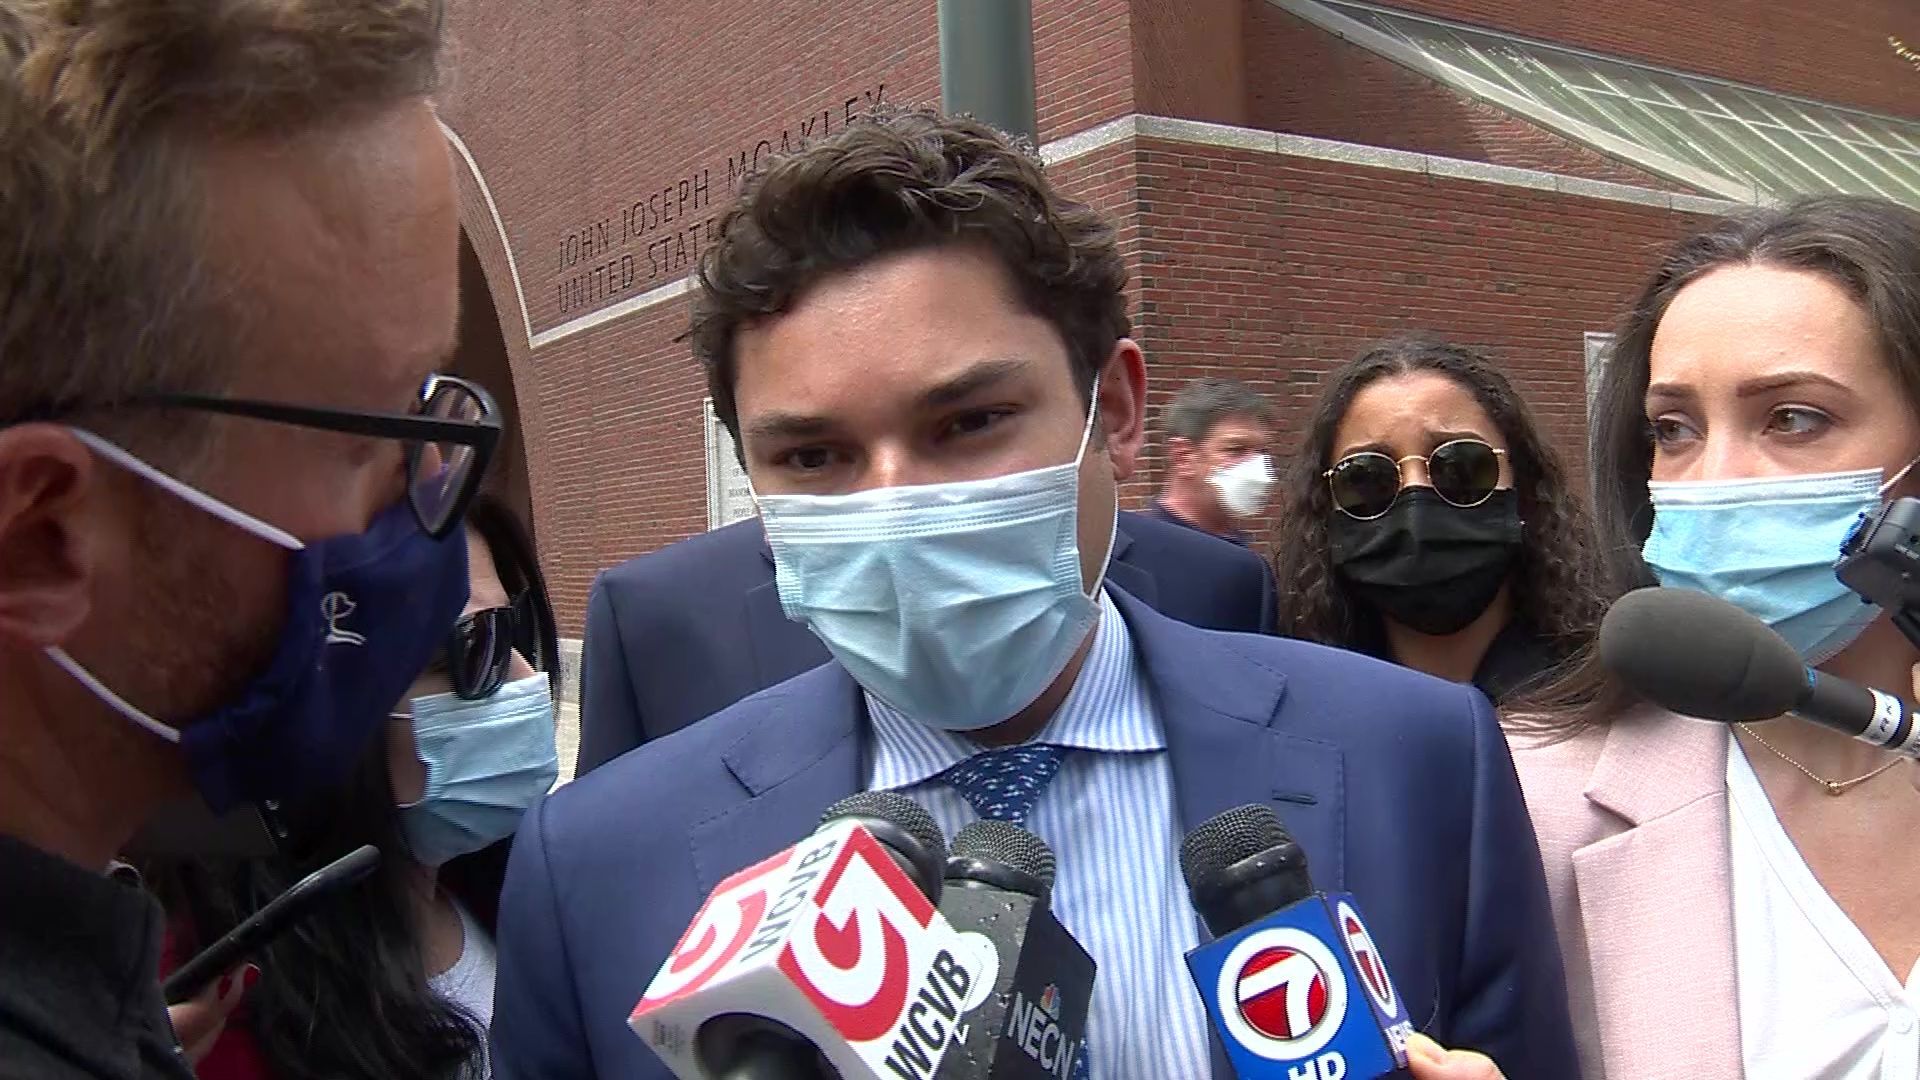 Convicted ex-Fall River mayor says 'fight is not over'